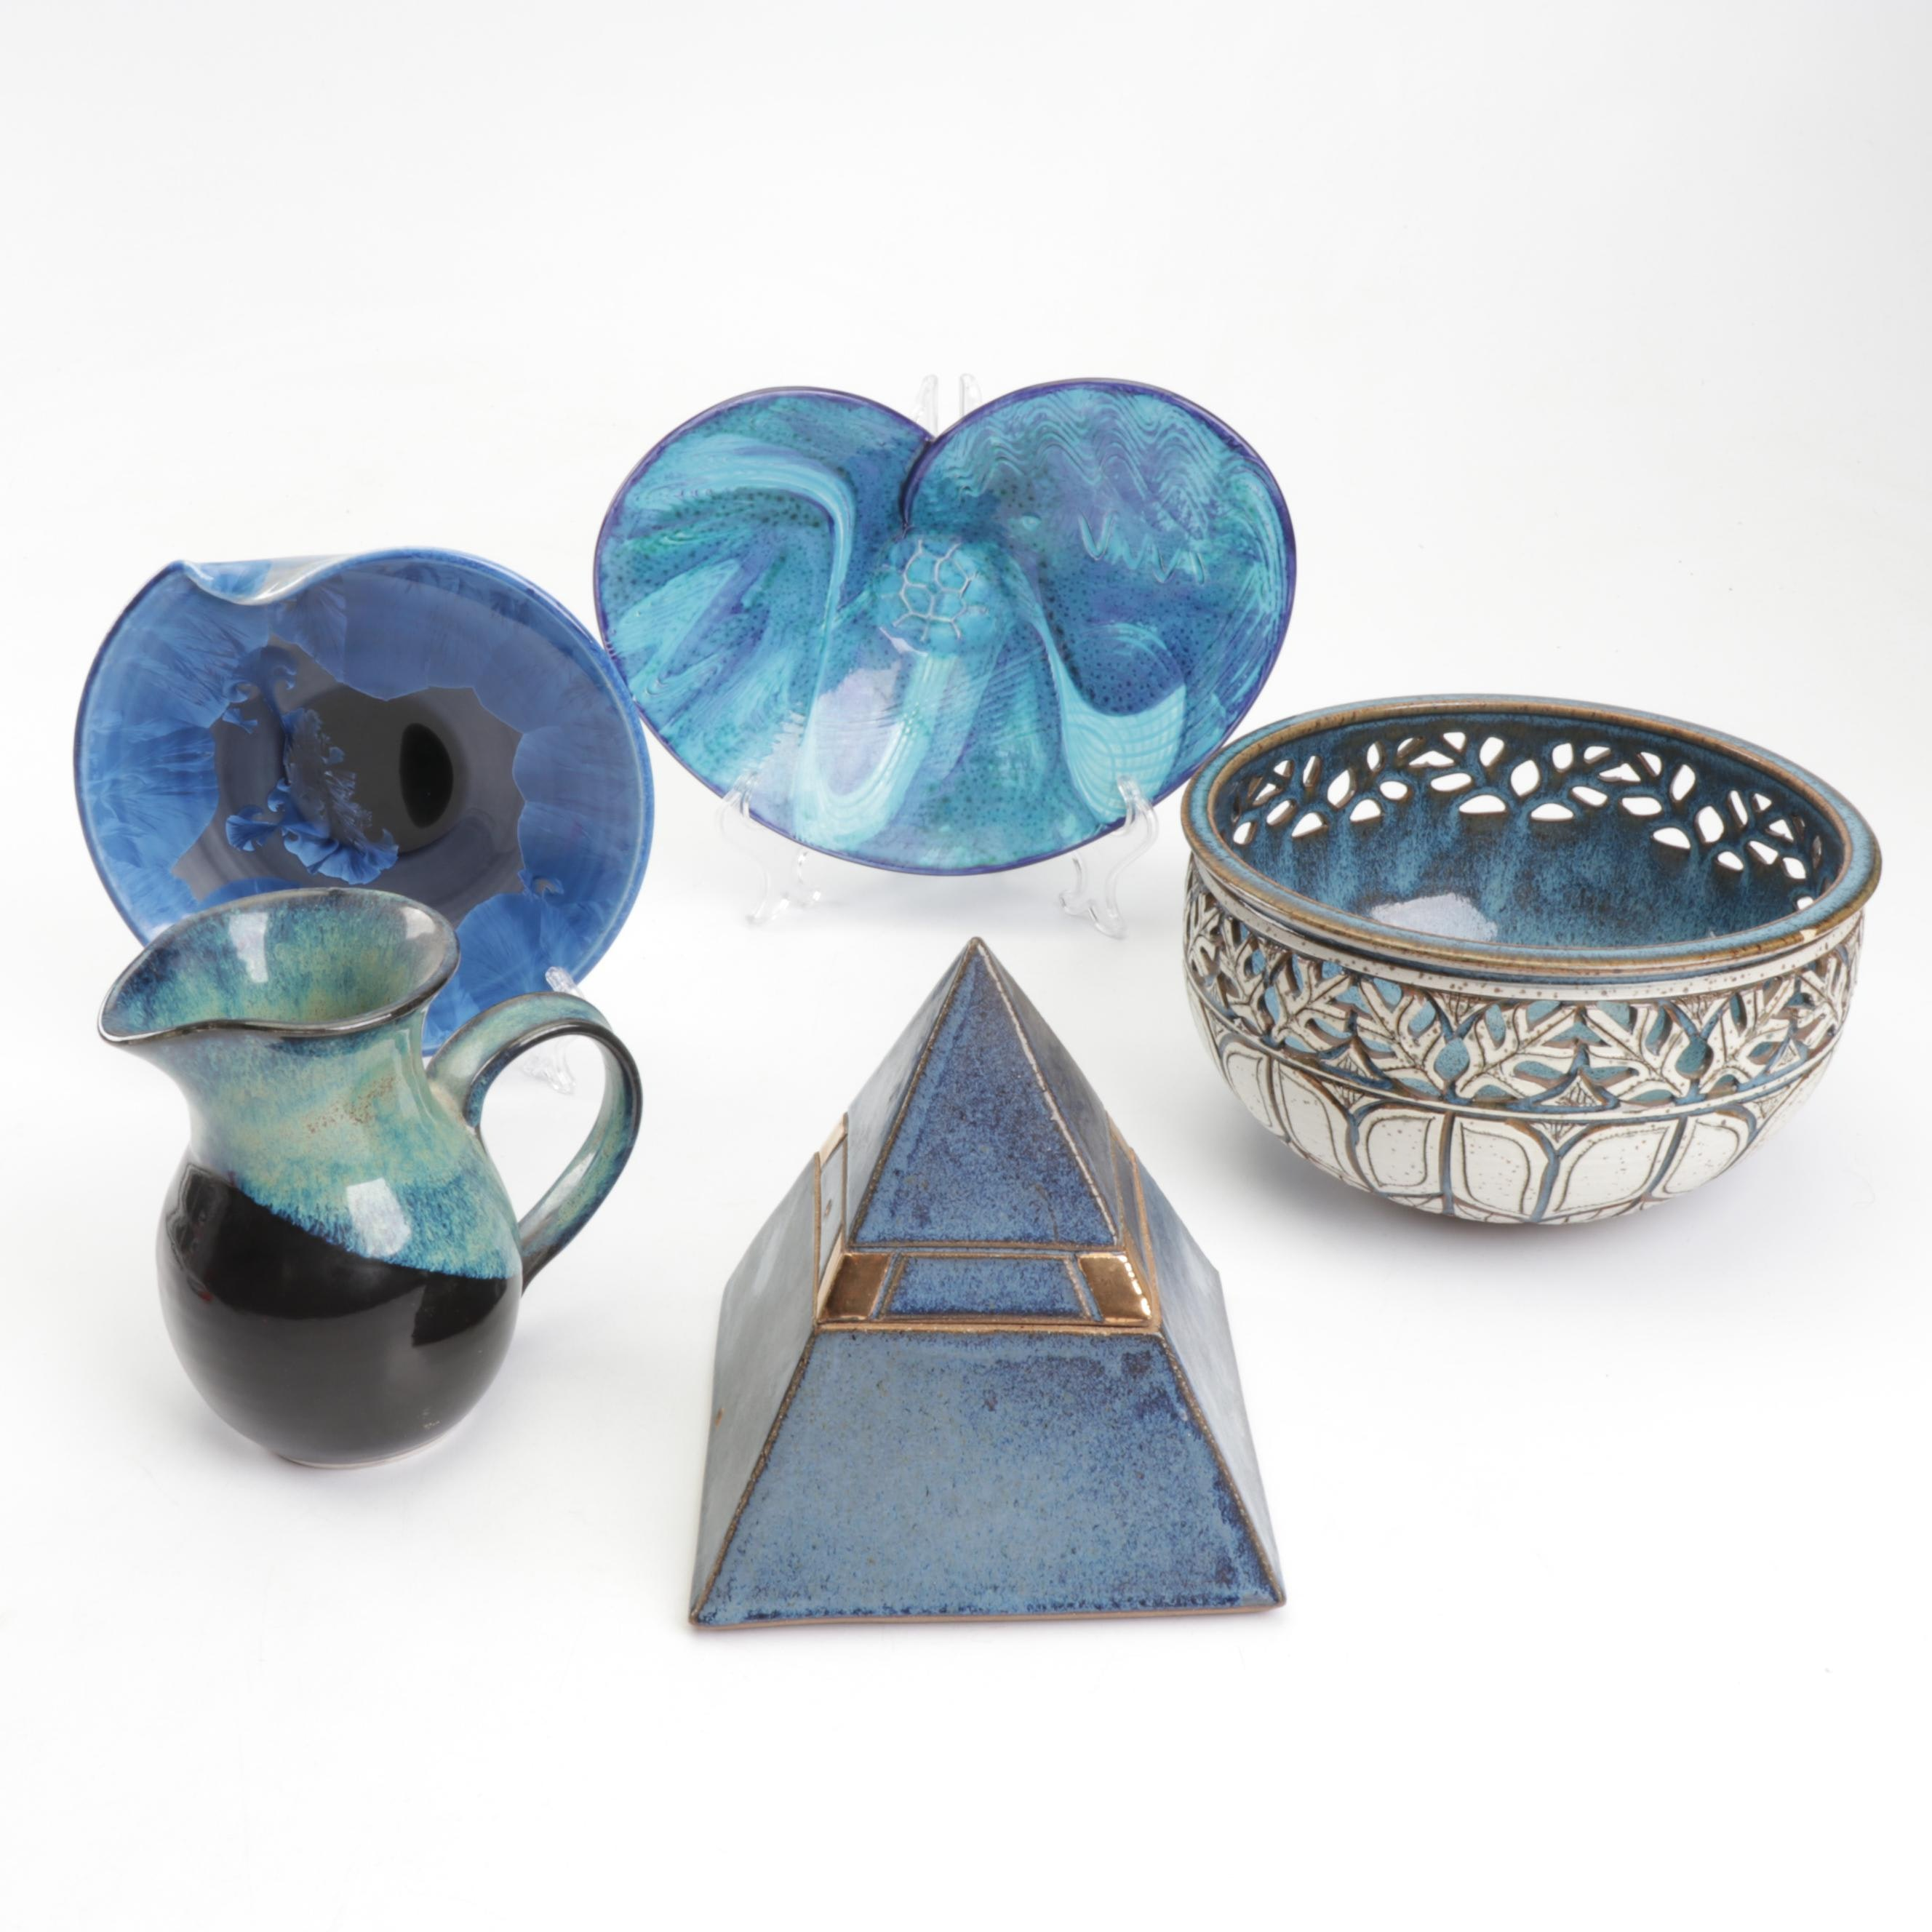 Handbuilt and Thrown Porcelain and Stoneware Home Decor